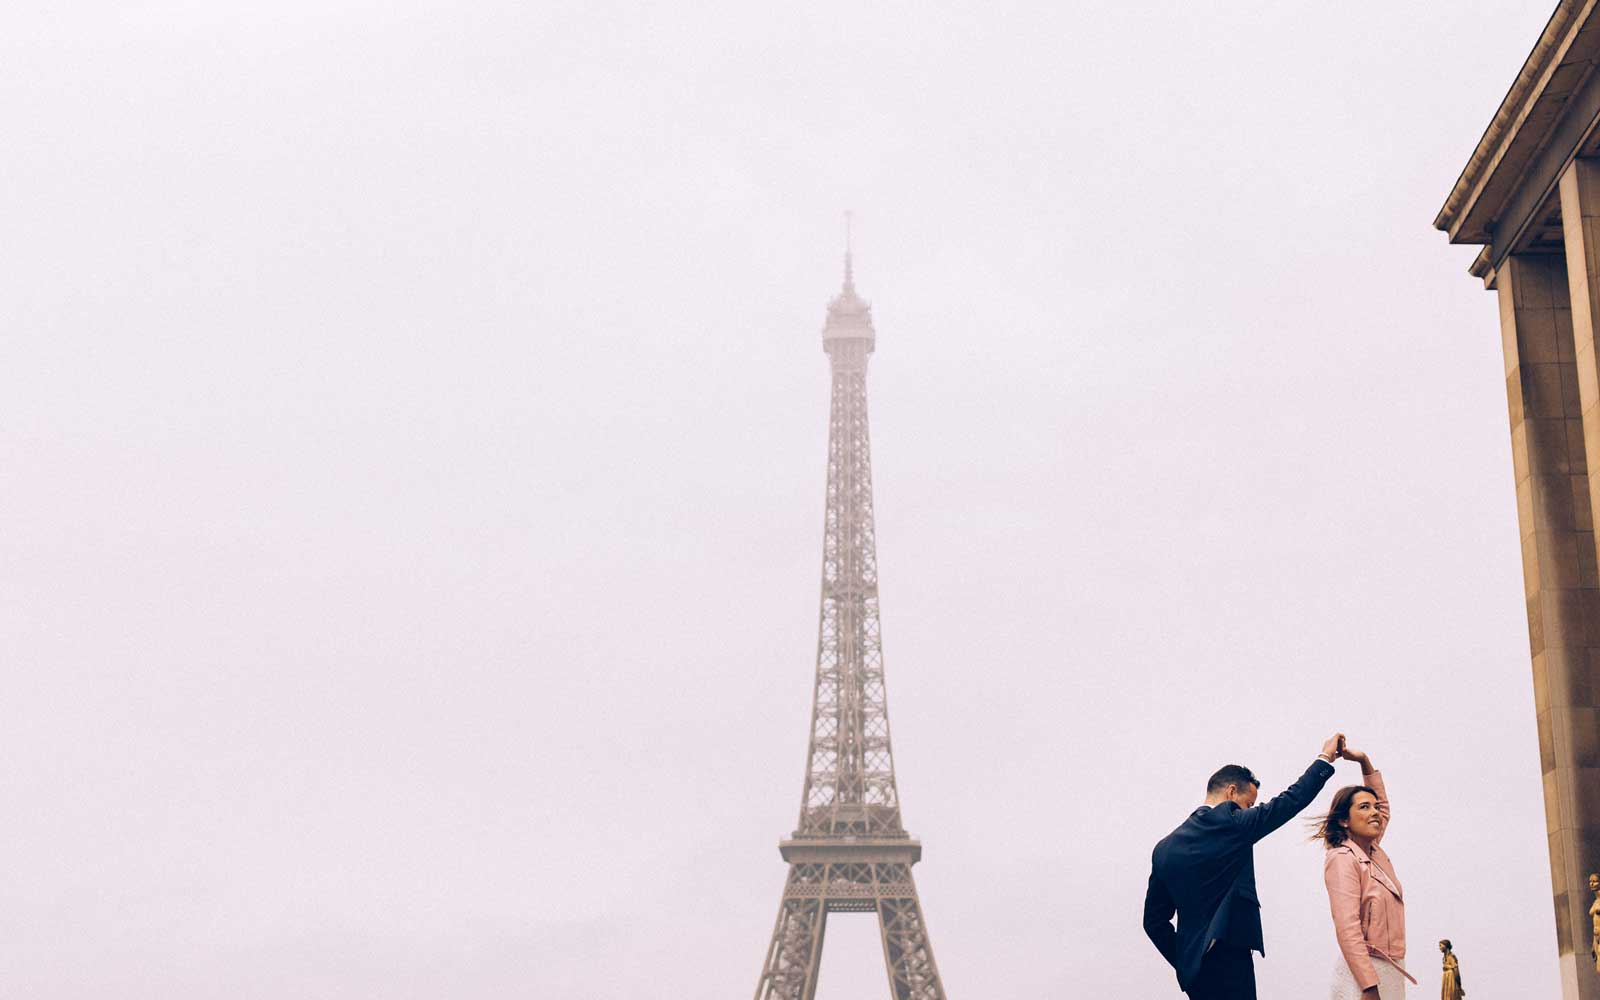 Newly-wed couple on their honeymoon in Paris, loving having a date near the Eiffel tower